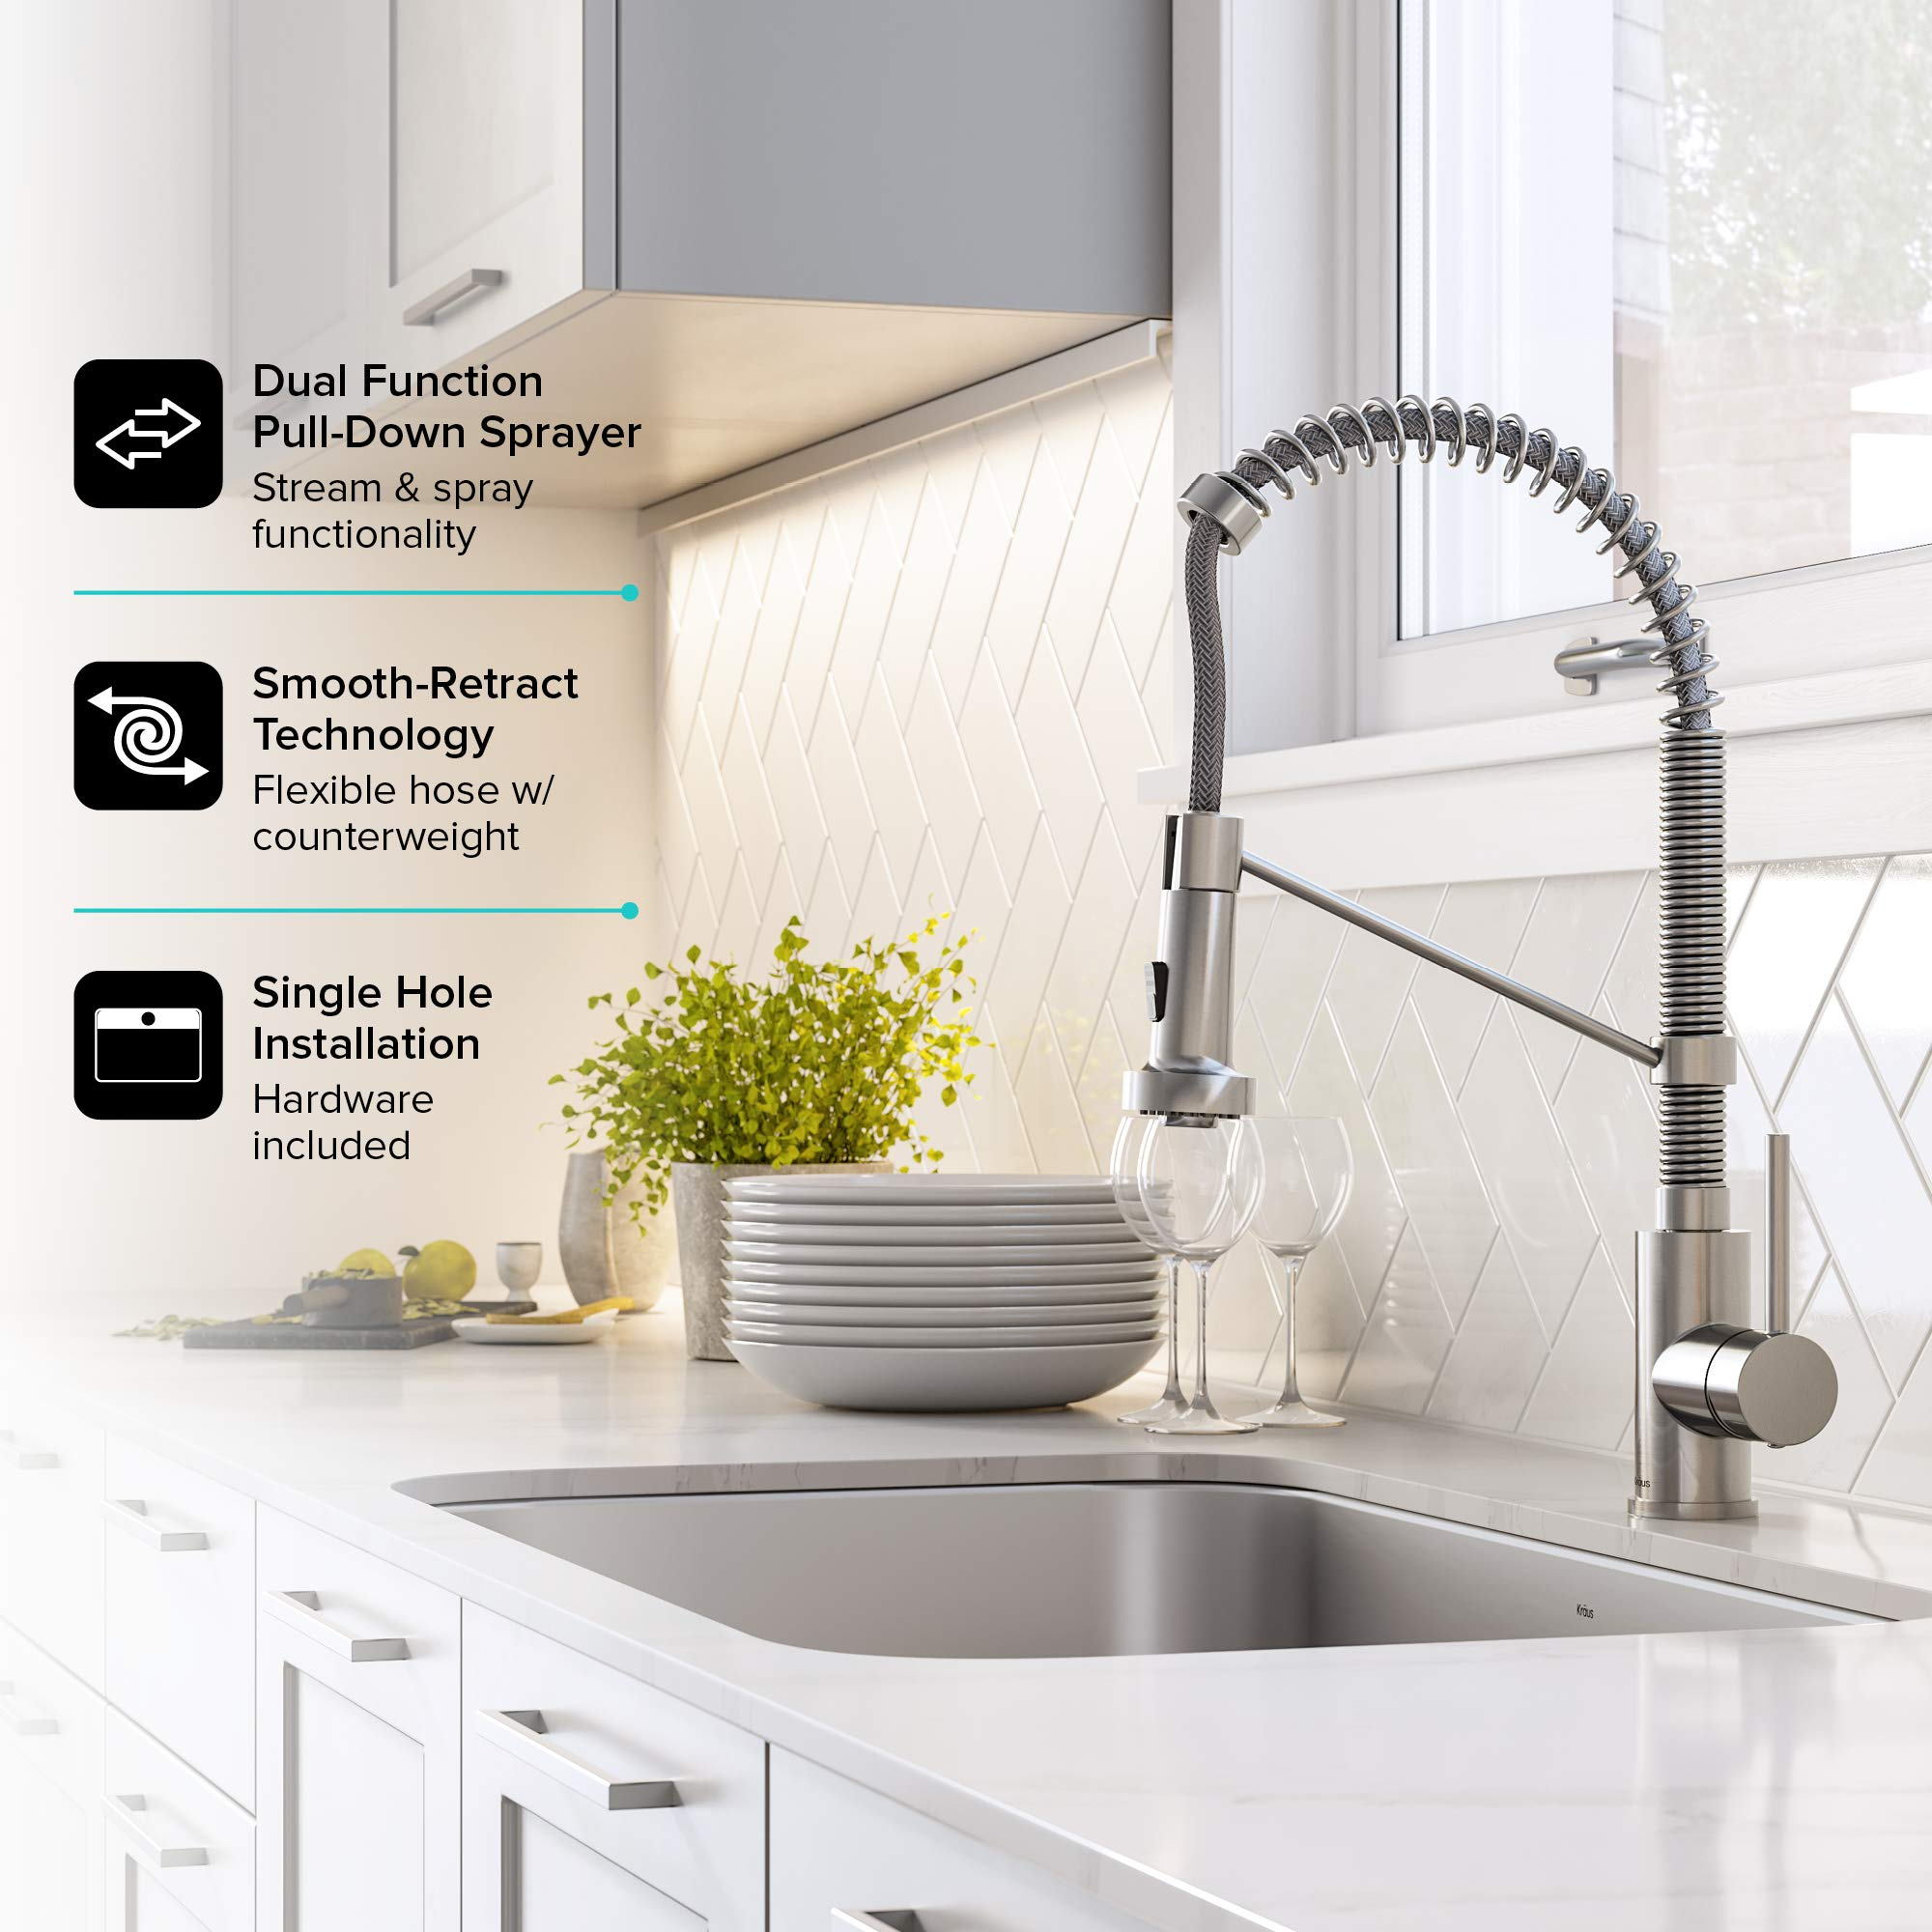 KRAUS KCA-1200 Ellis Kitchen Combo Set with 33-inch 16 Gauge Undermount Kitchen Sink and Bolden 18-inch Pull-Down Commercial Style Kitchen Faucet, Stainless Steel Finish by Kraus (Image #9)